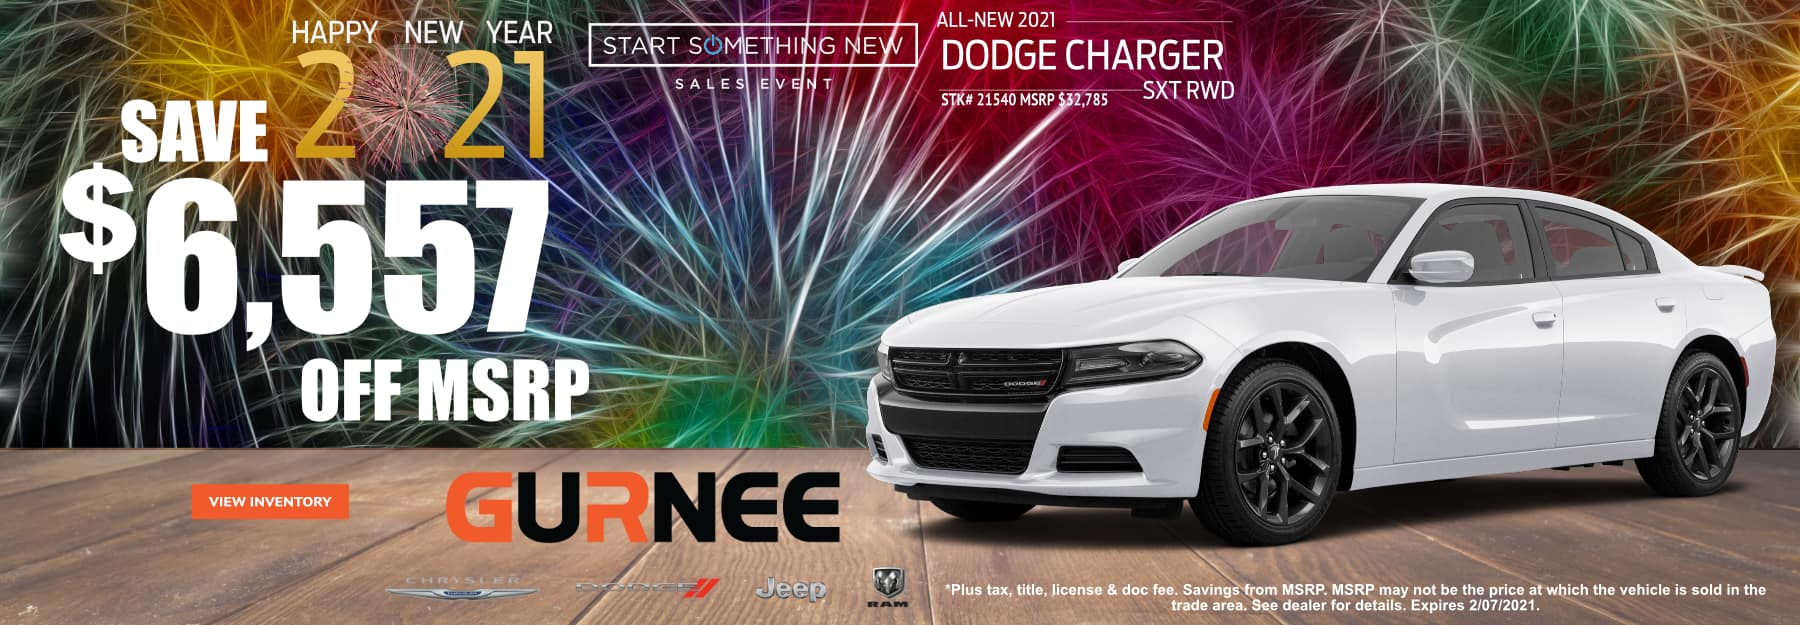 January-2021 DODGE_CHARGER_GURNEE